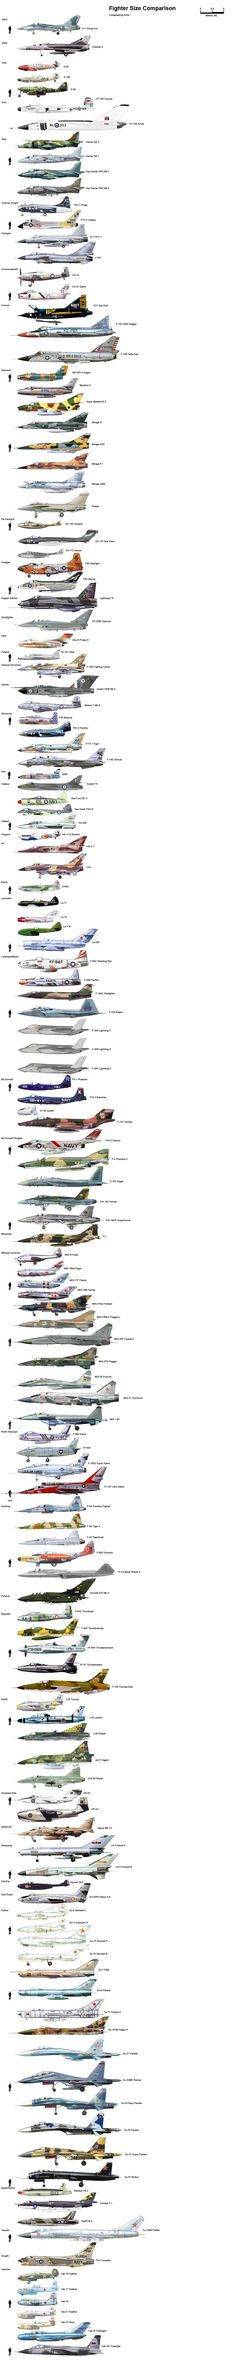 Patterns of International Plane's; Size & Scale Comparisons